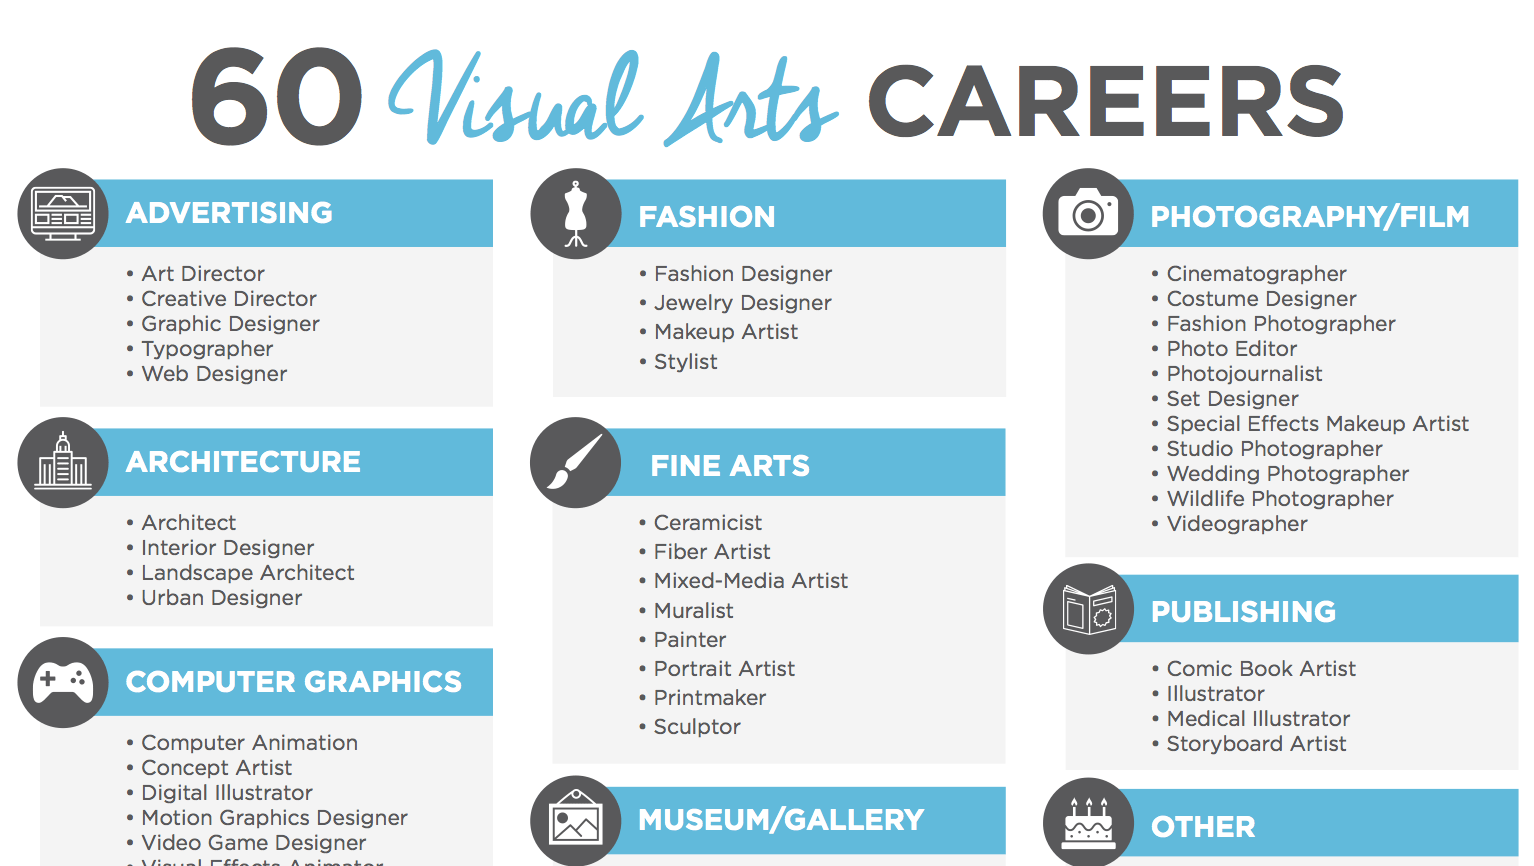 hight resolution of 60 Visual Arts Careers to Discuss With Your Students - The Art of Education  University